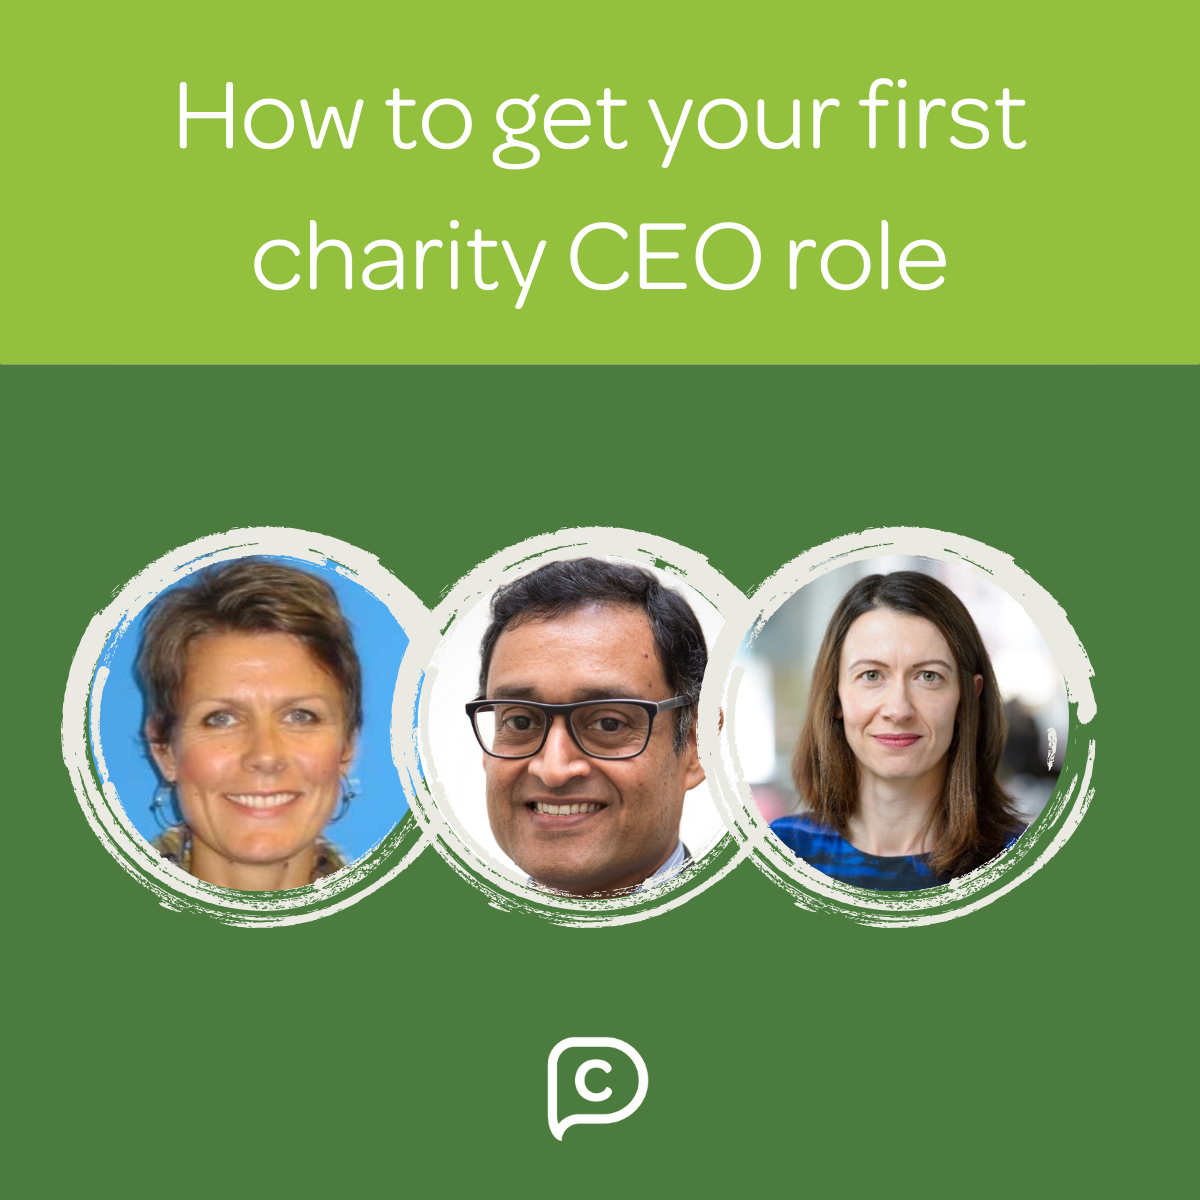 How to get your first charity CEO role